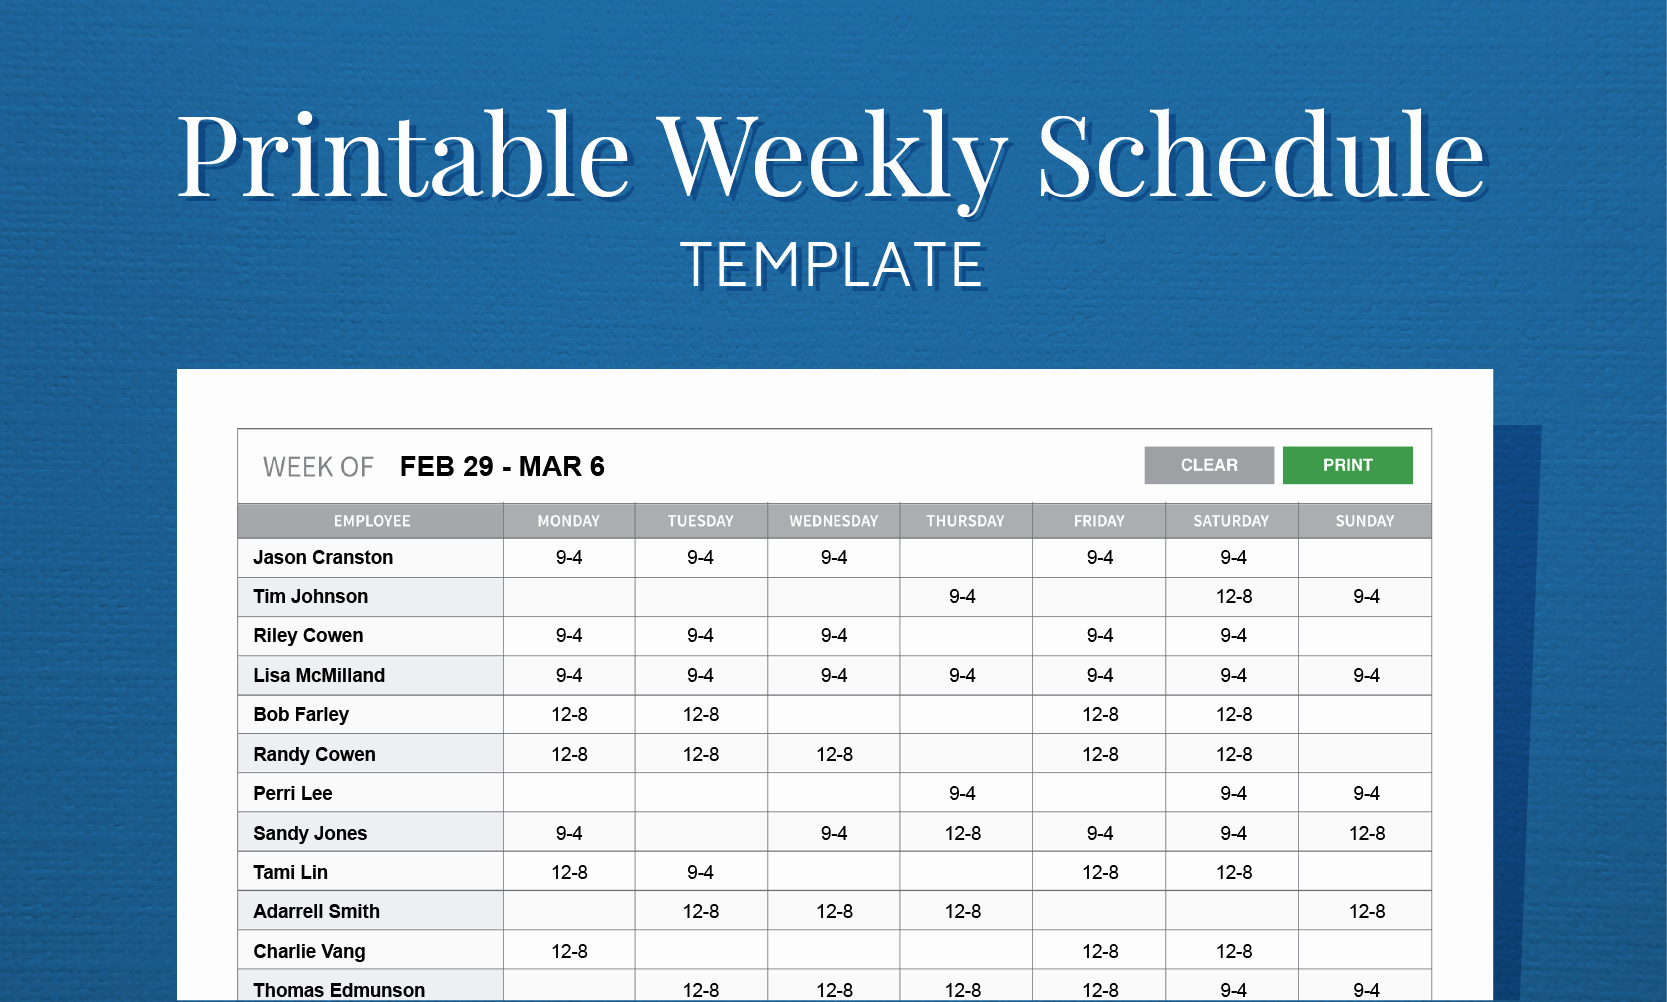 Monthly Staff Schedule Template Elegant Free Printable Weekly Work Schedule Template for Employee